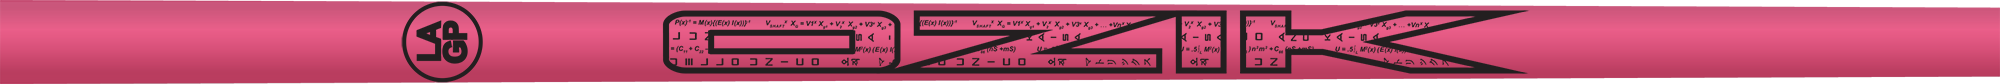 Ozik White Tie: Neon Pink Black Satin - Wood 50 R